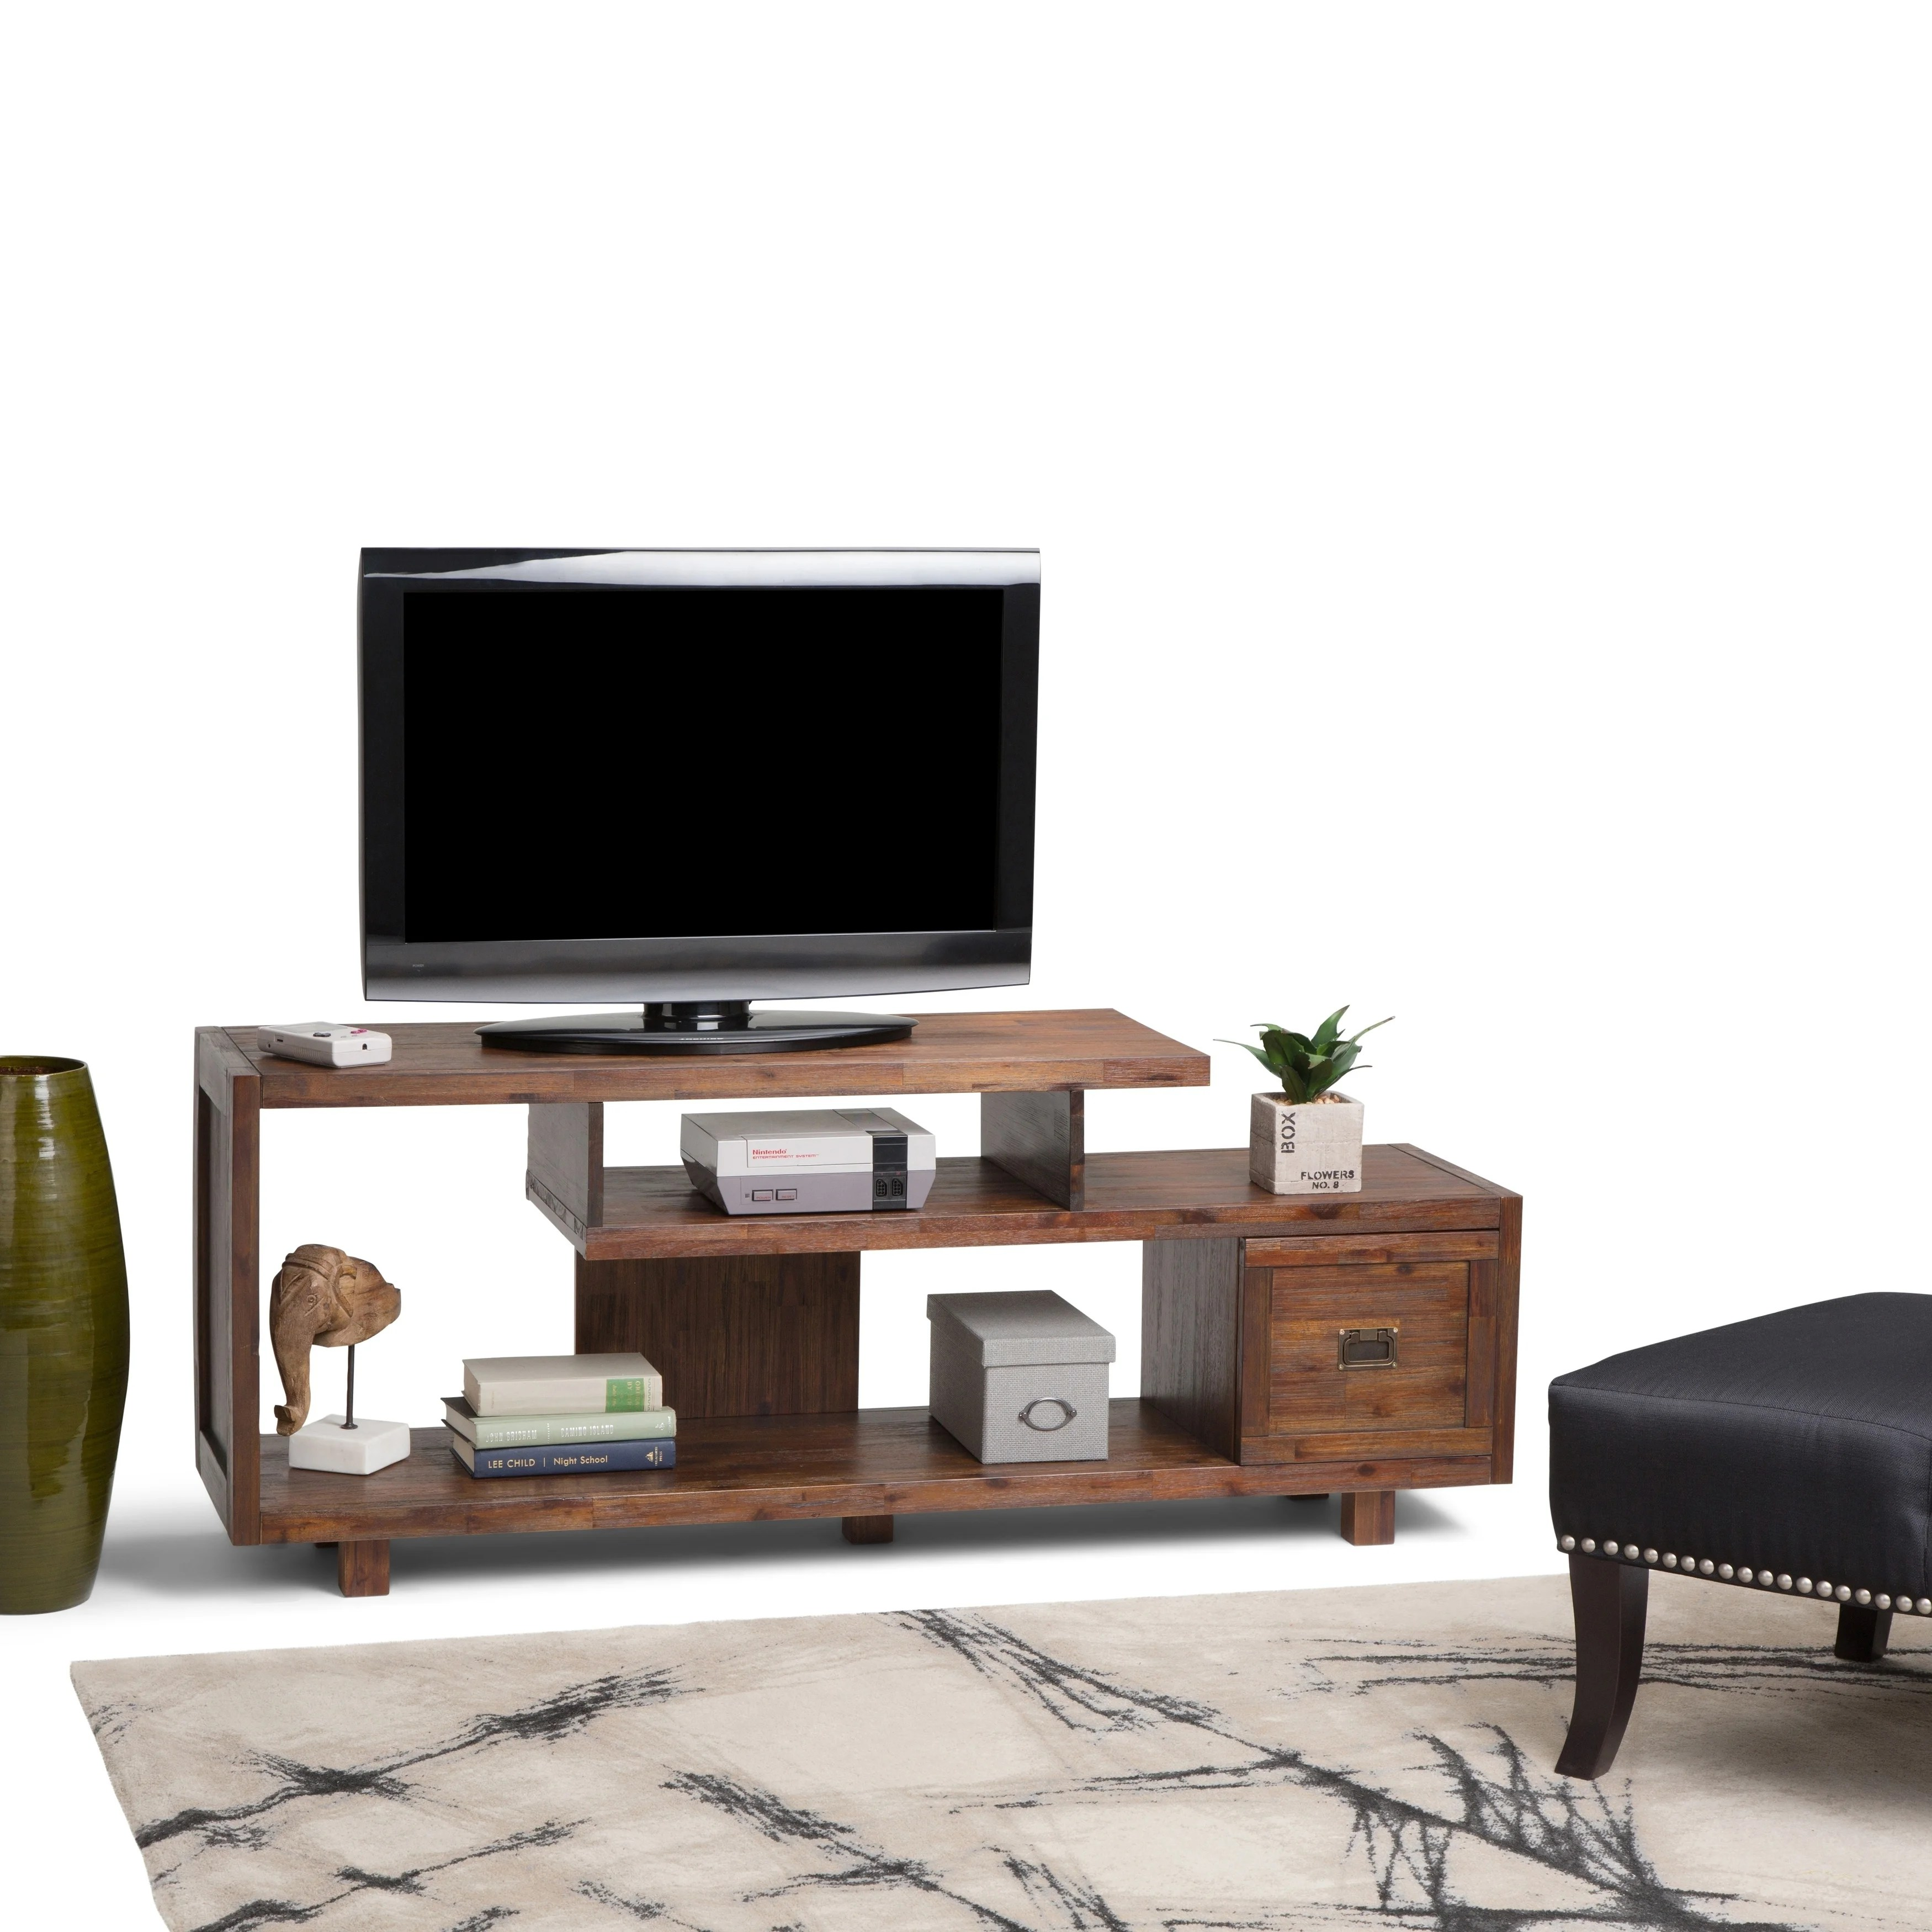 Tv Shop Perth Wyndenhall Garret Solid Acacia Wood 60 Inch Wide Rustic Tv Media Stand In Distressed Charcoal Brown For Tvs Up To 65 Inches